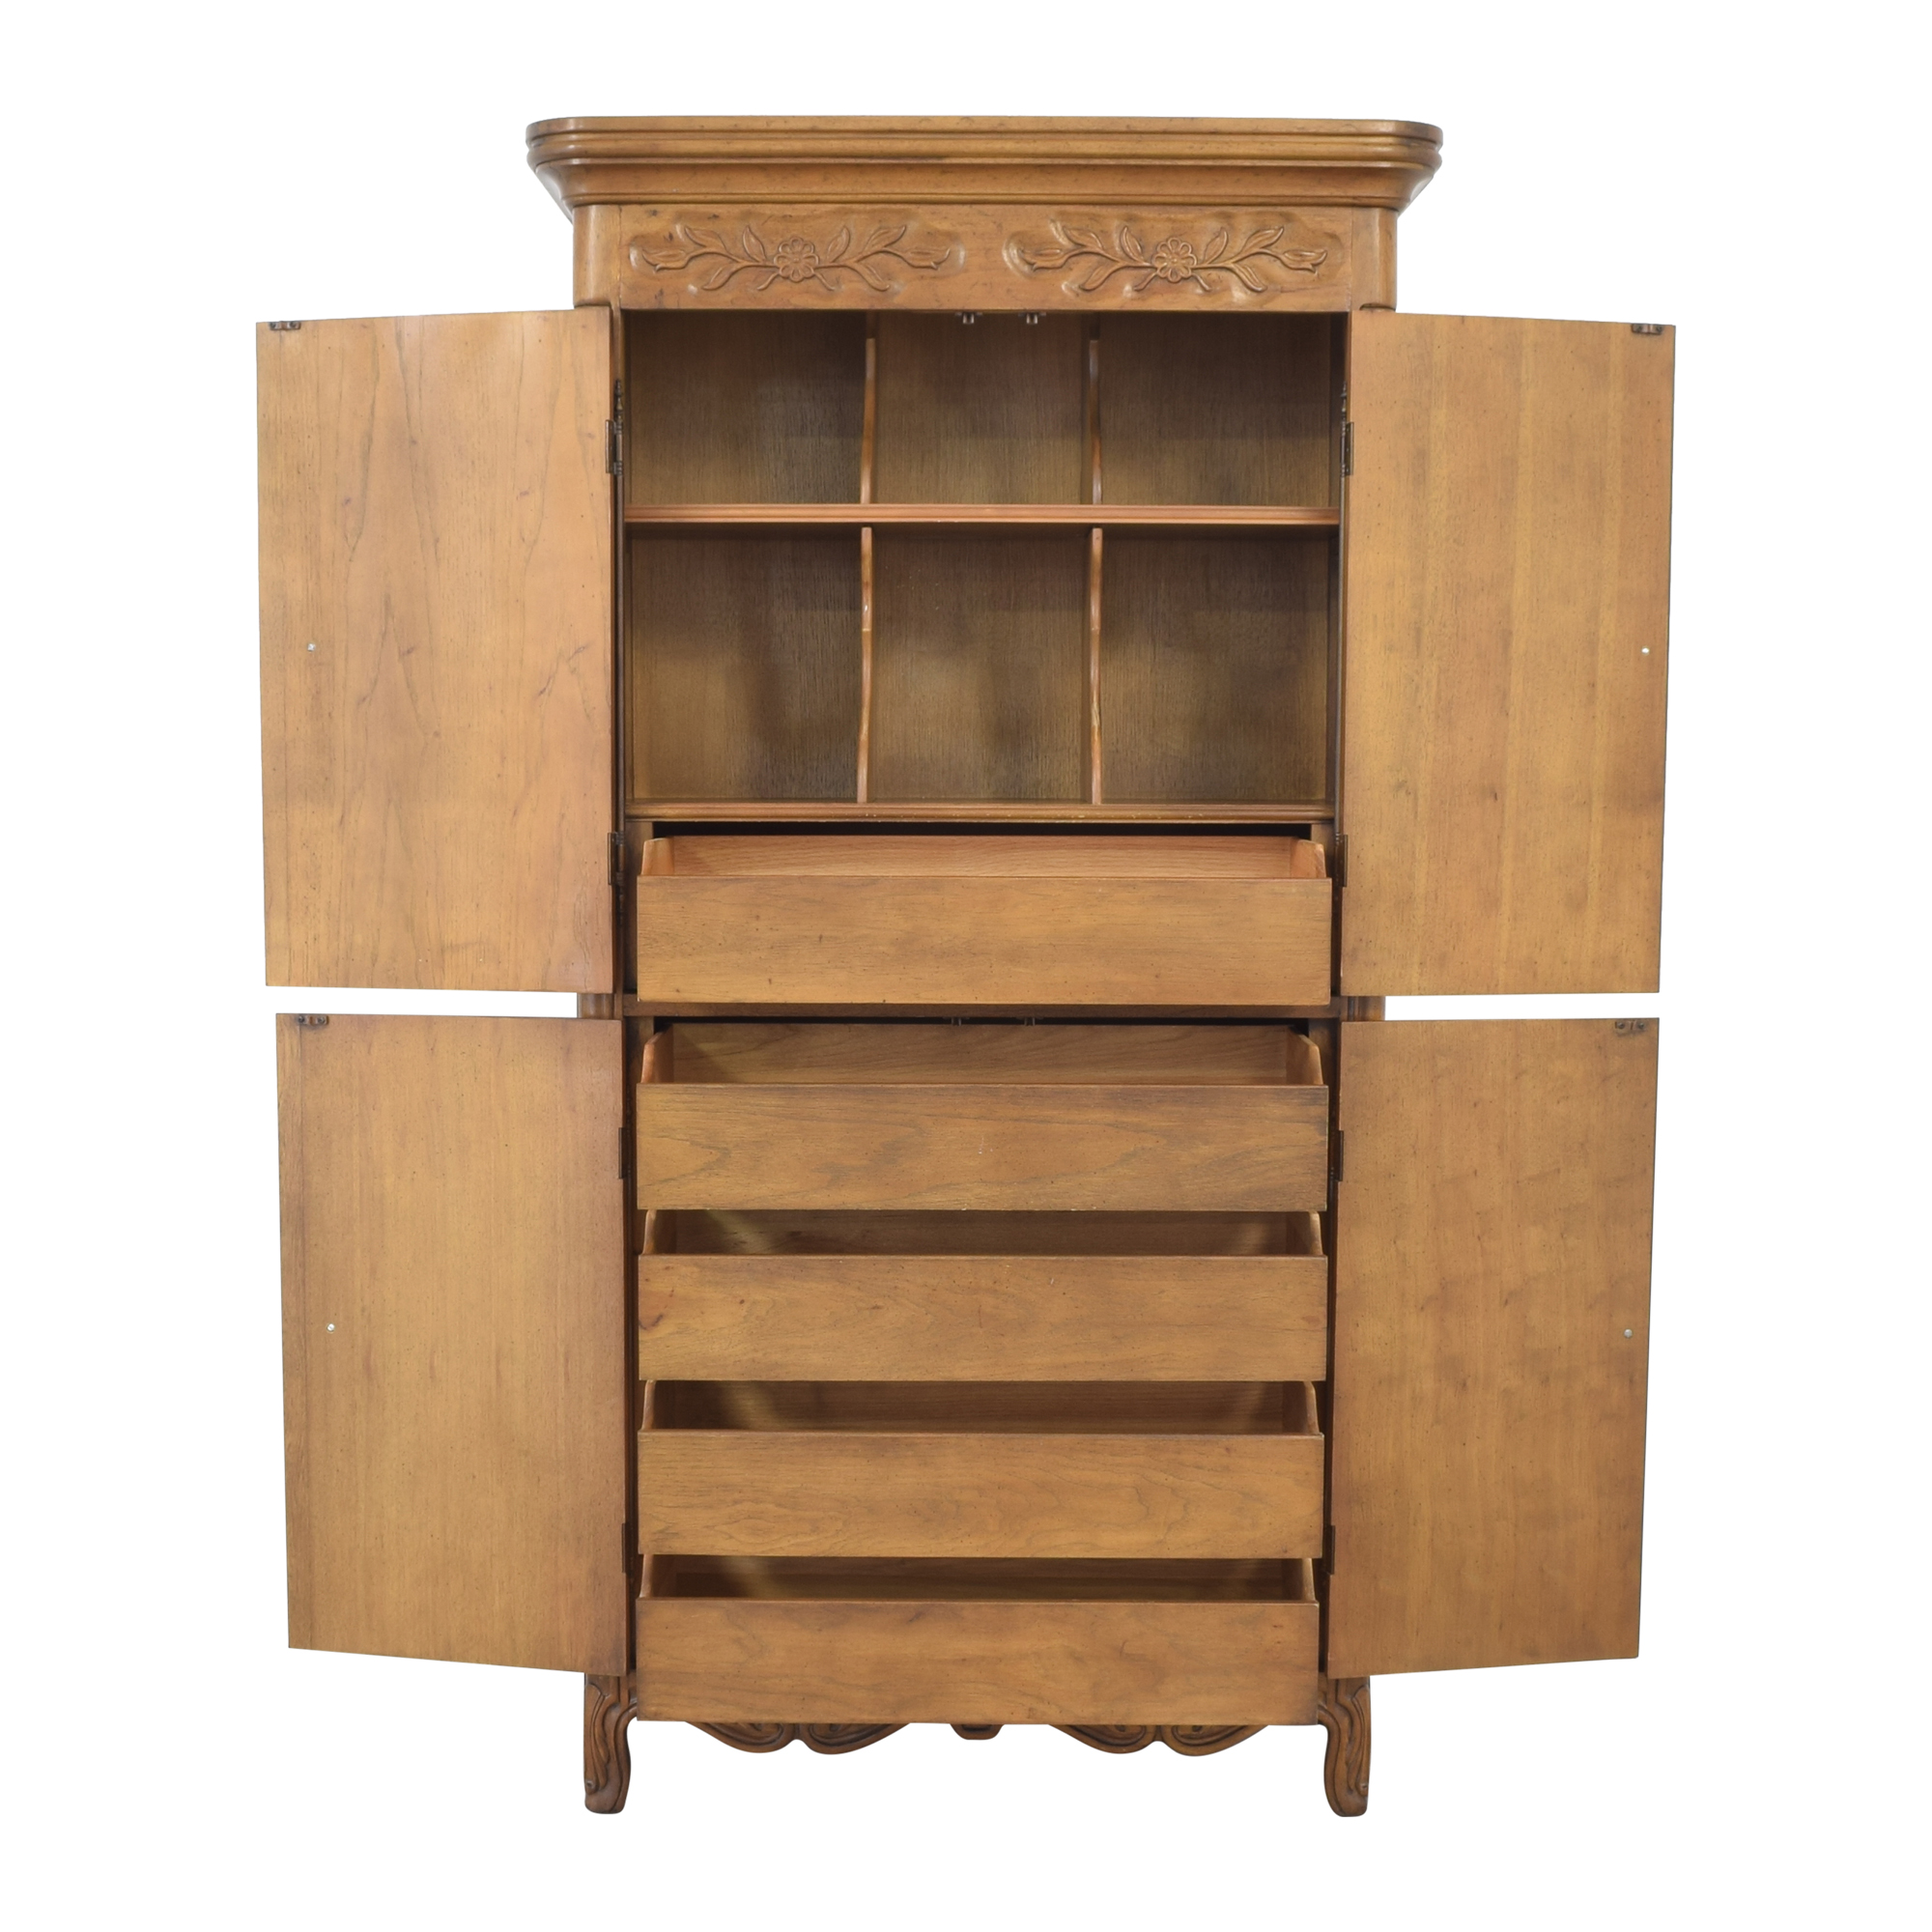 buy Drexel Armoire with Cabinets Drexel Wardrobes & Armoires